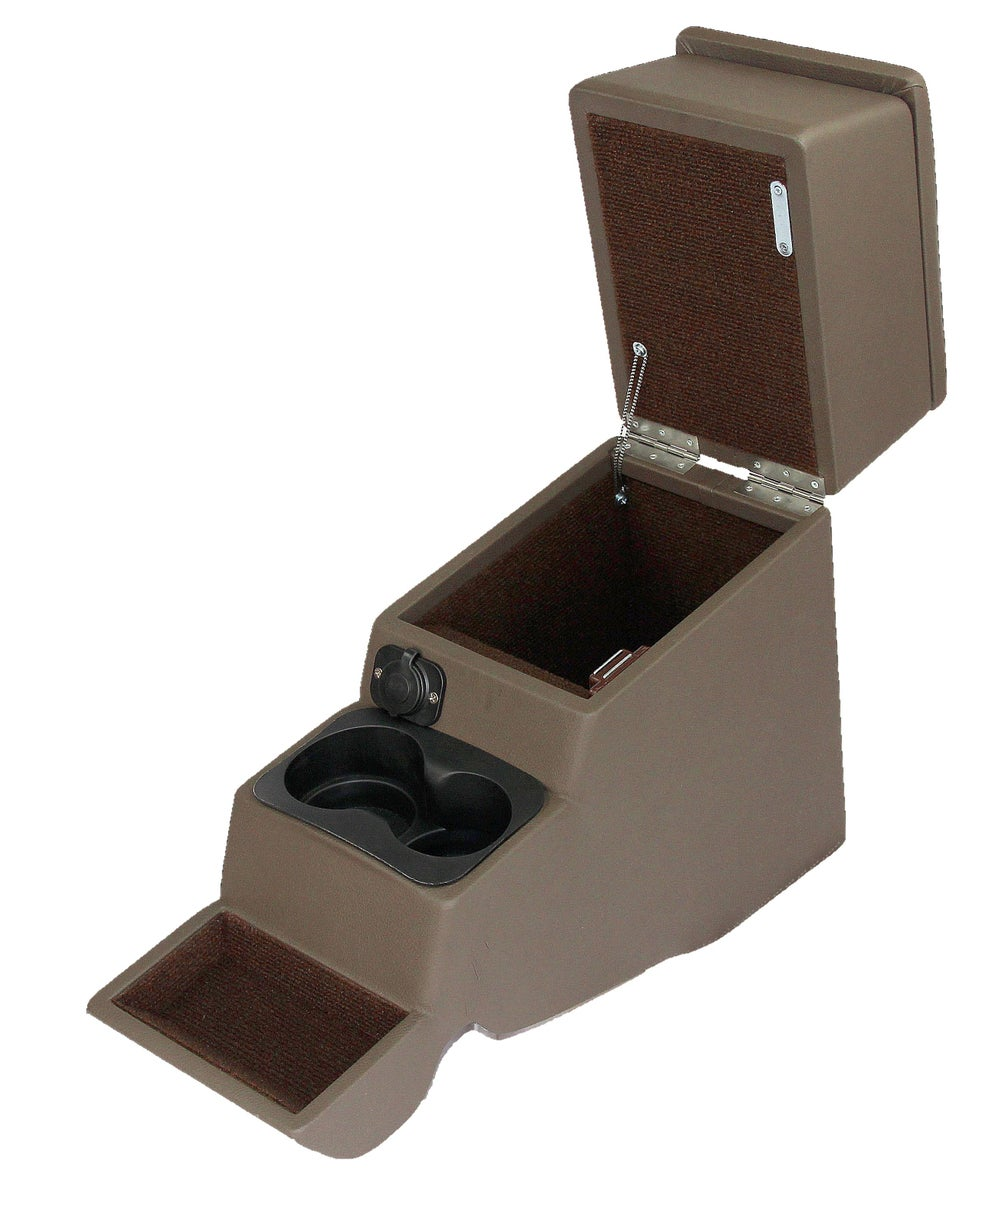 Image of PPaccessories Toyota Land Cruiser 60 series center console